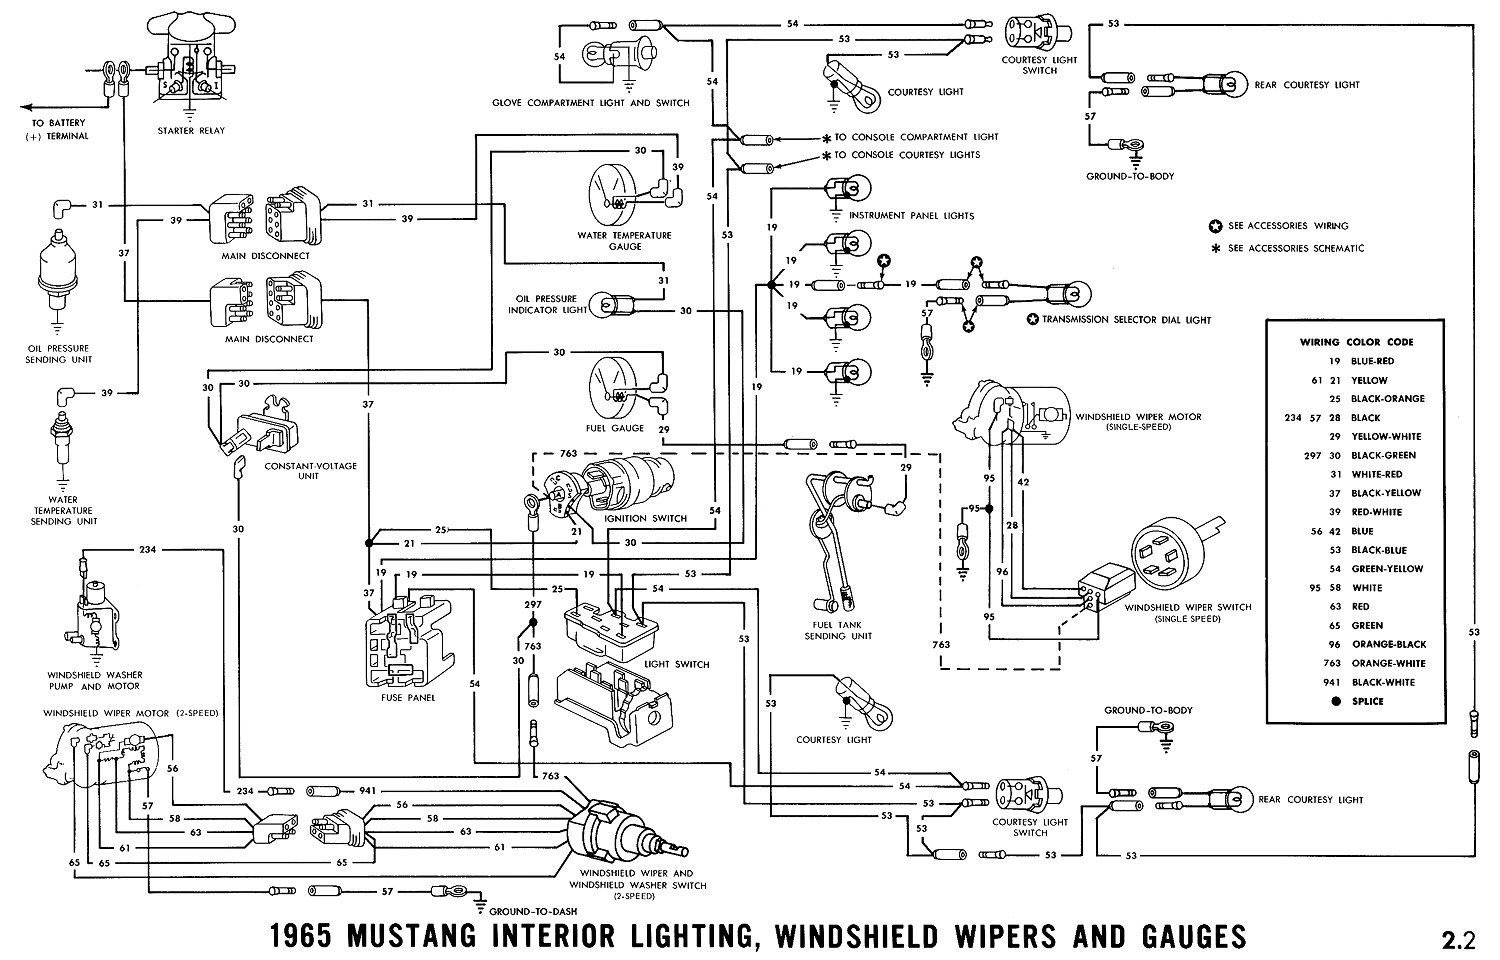 1965g 1965 mustang wiring diagrams average joe restoration 1965 ford f100 dash wiring diagram at gsmx.co